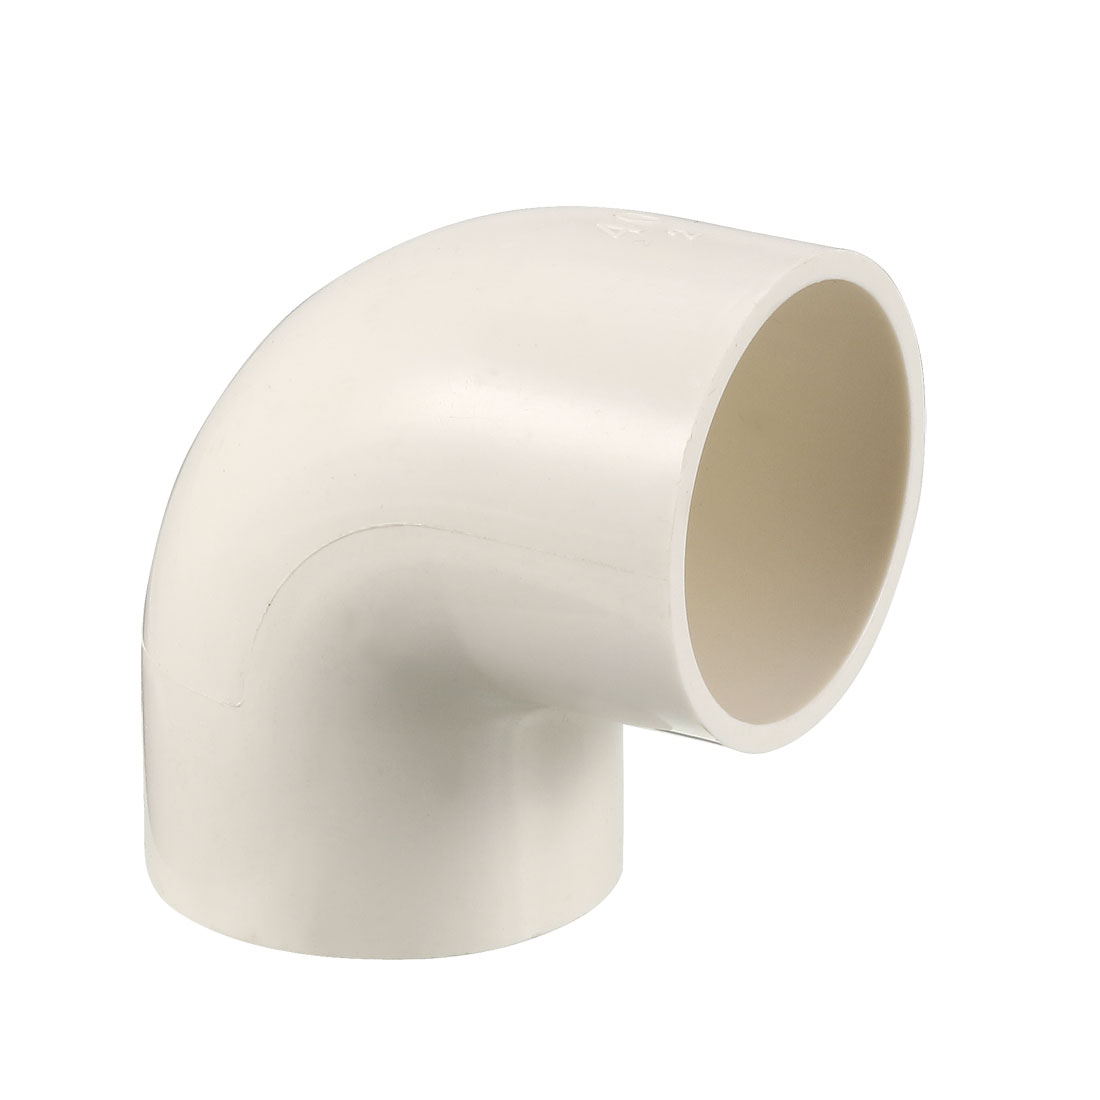 PVC Pipe Fitting 40mm Slip Socket 90 Degree Elbow Coupling Connector White 2Pcs